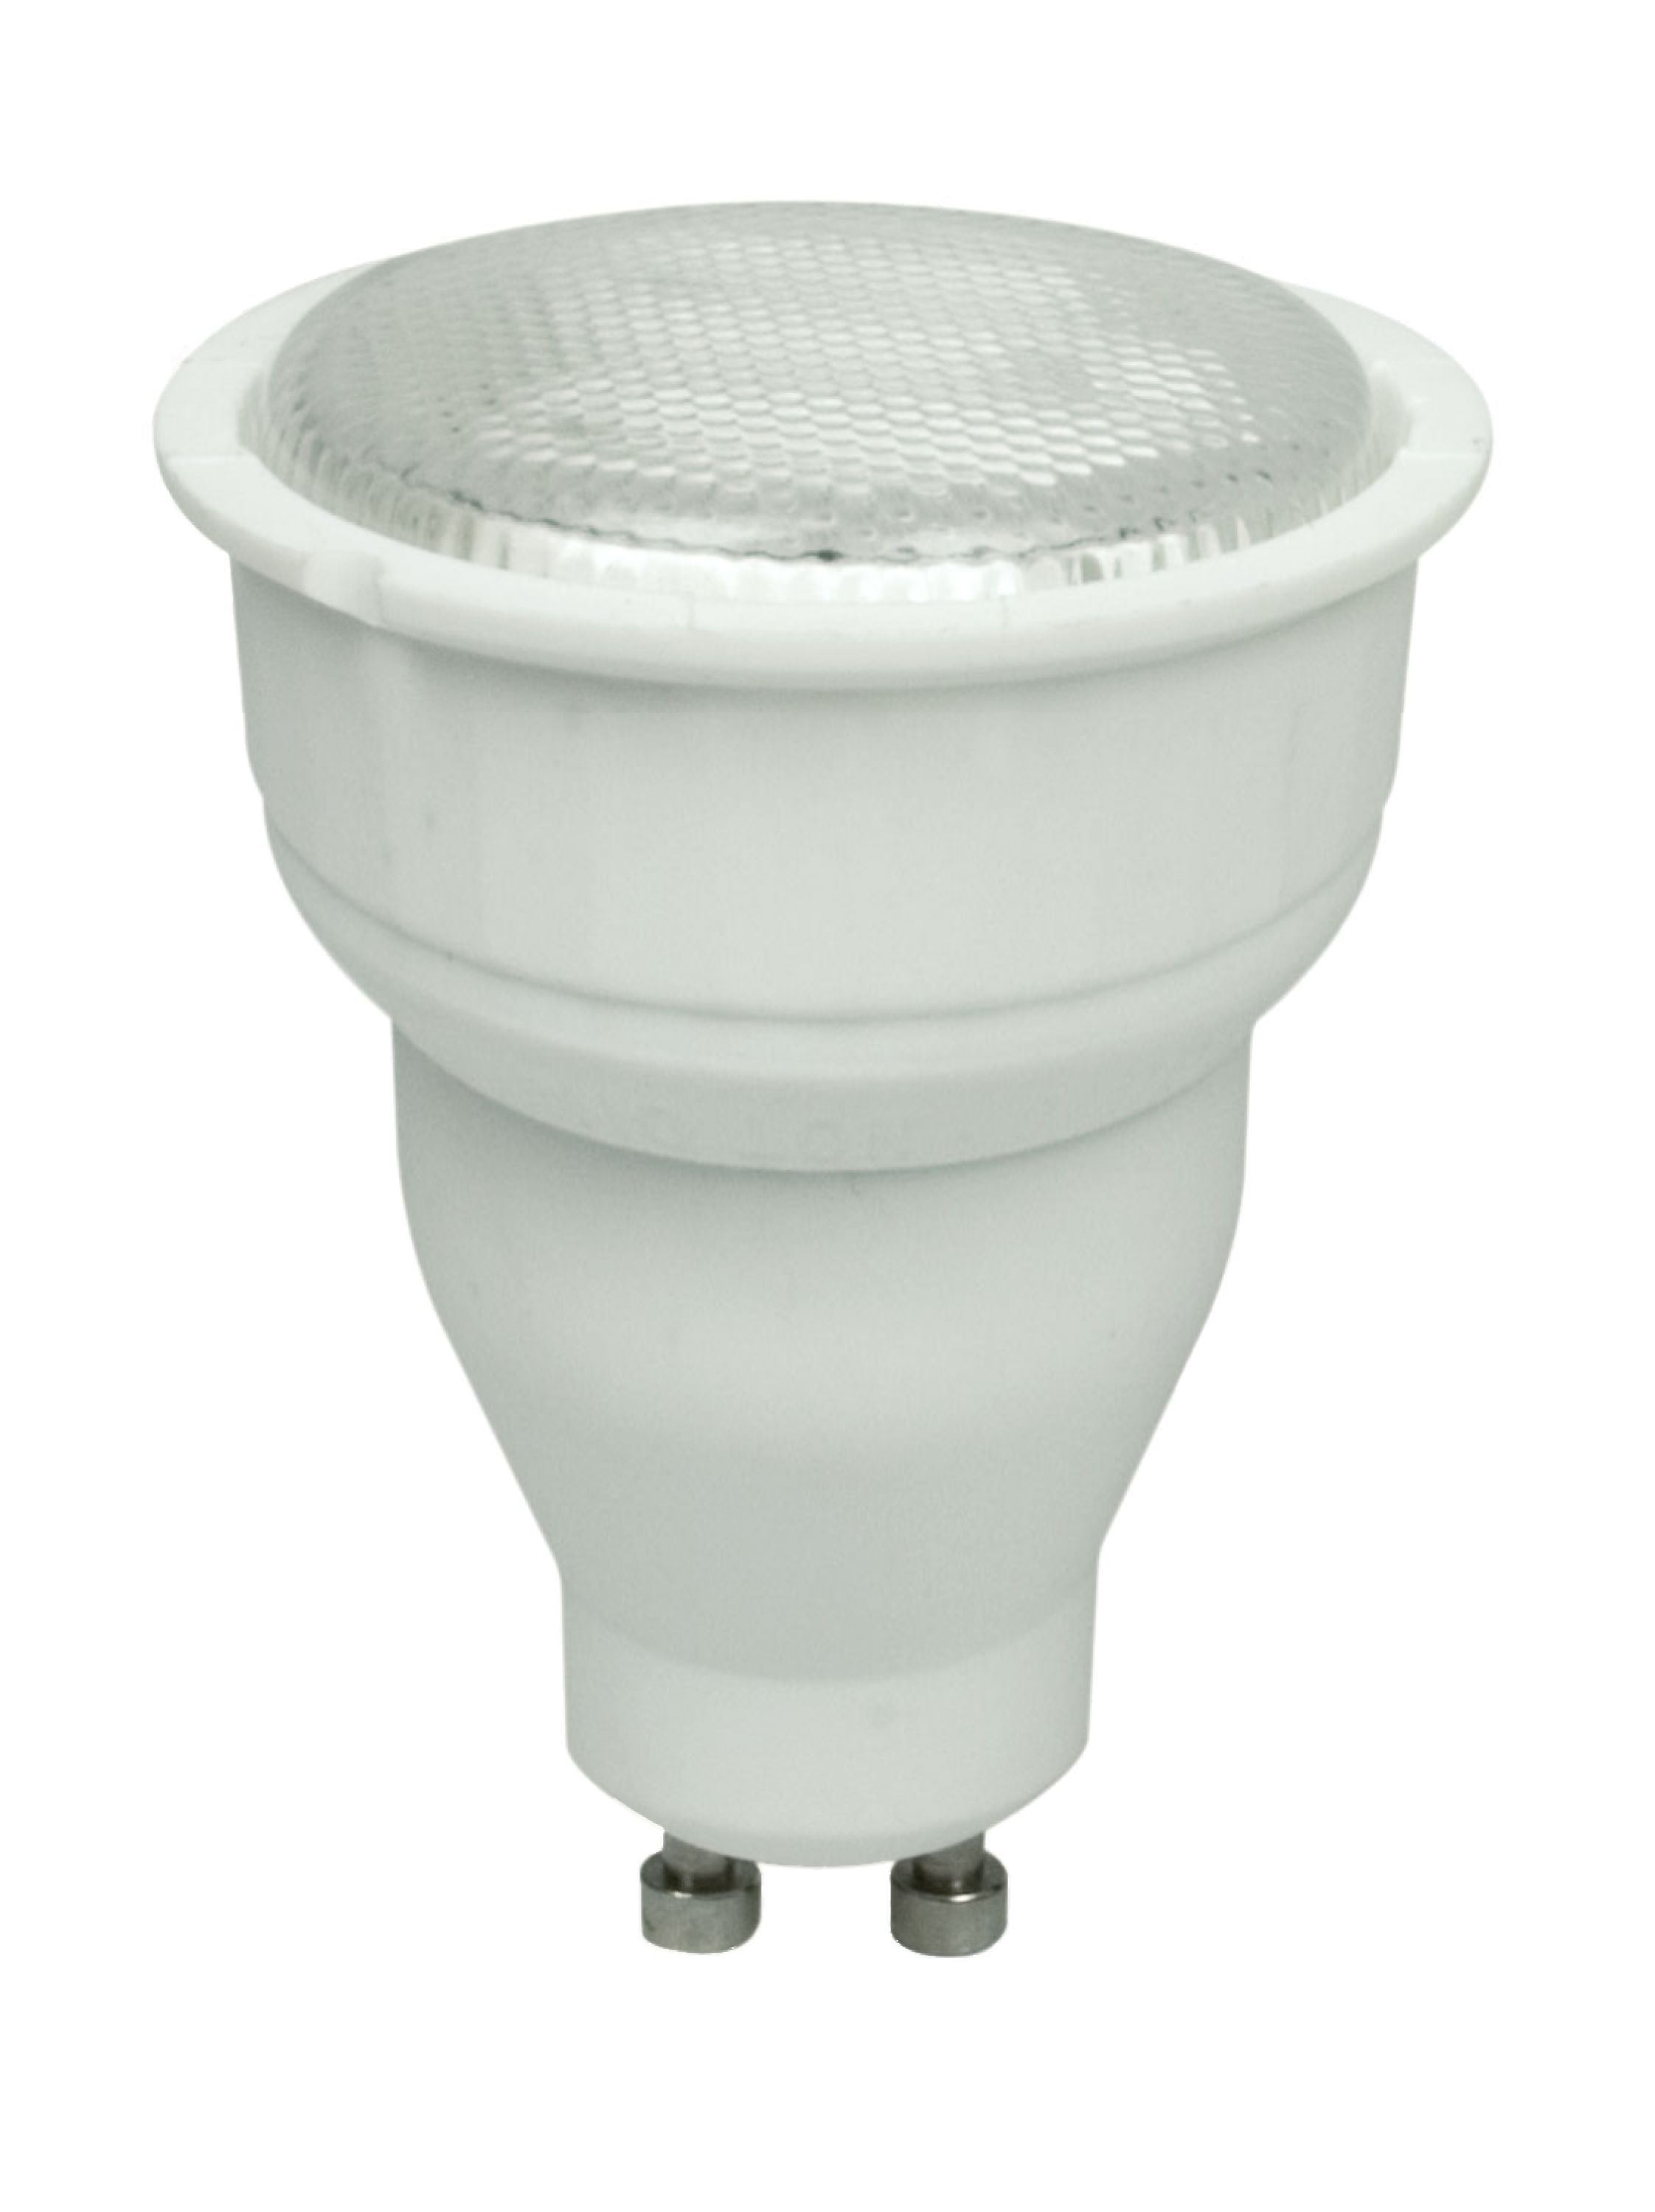 Jena 12v LED Recess or Floor Light (25mm, IP68, marine grade stainless, warm white)